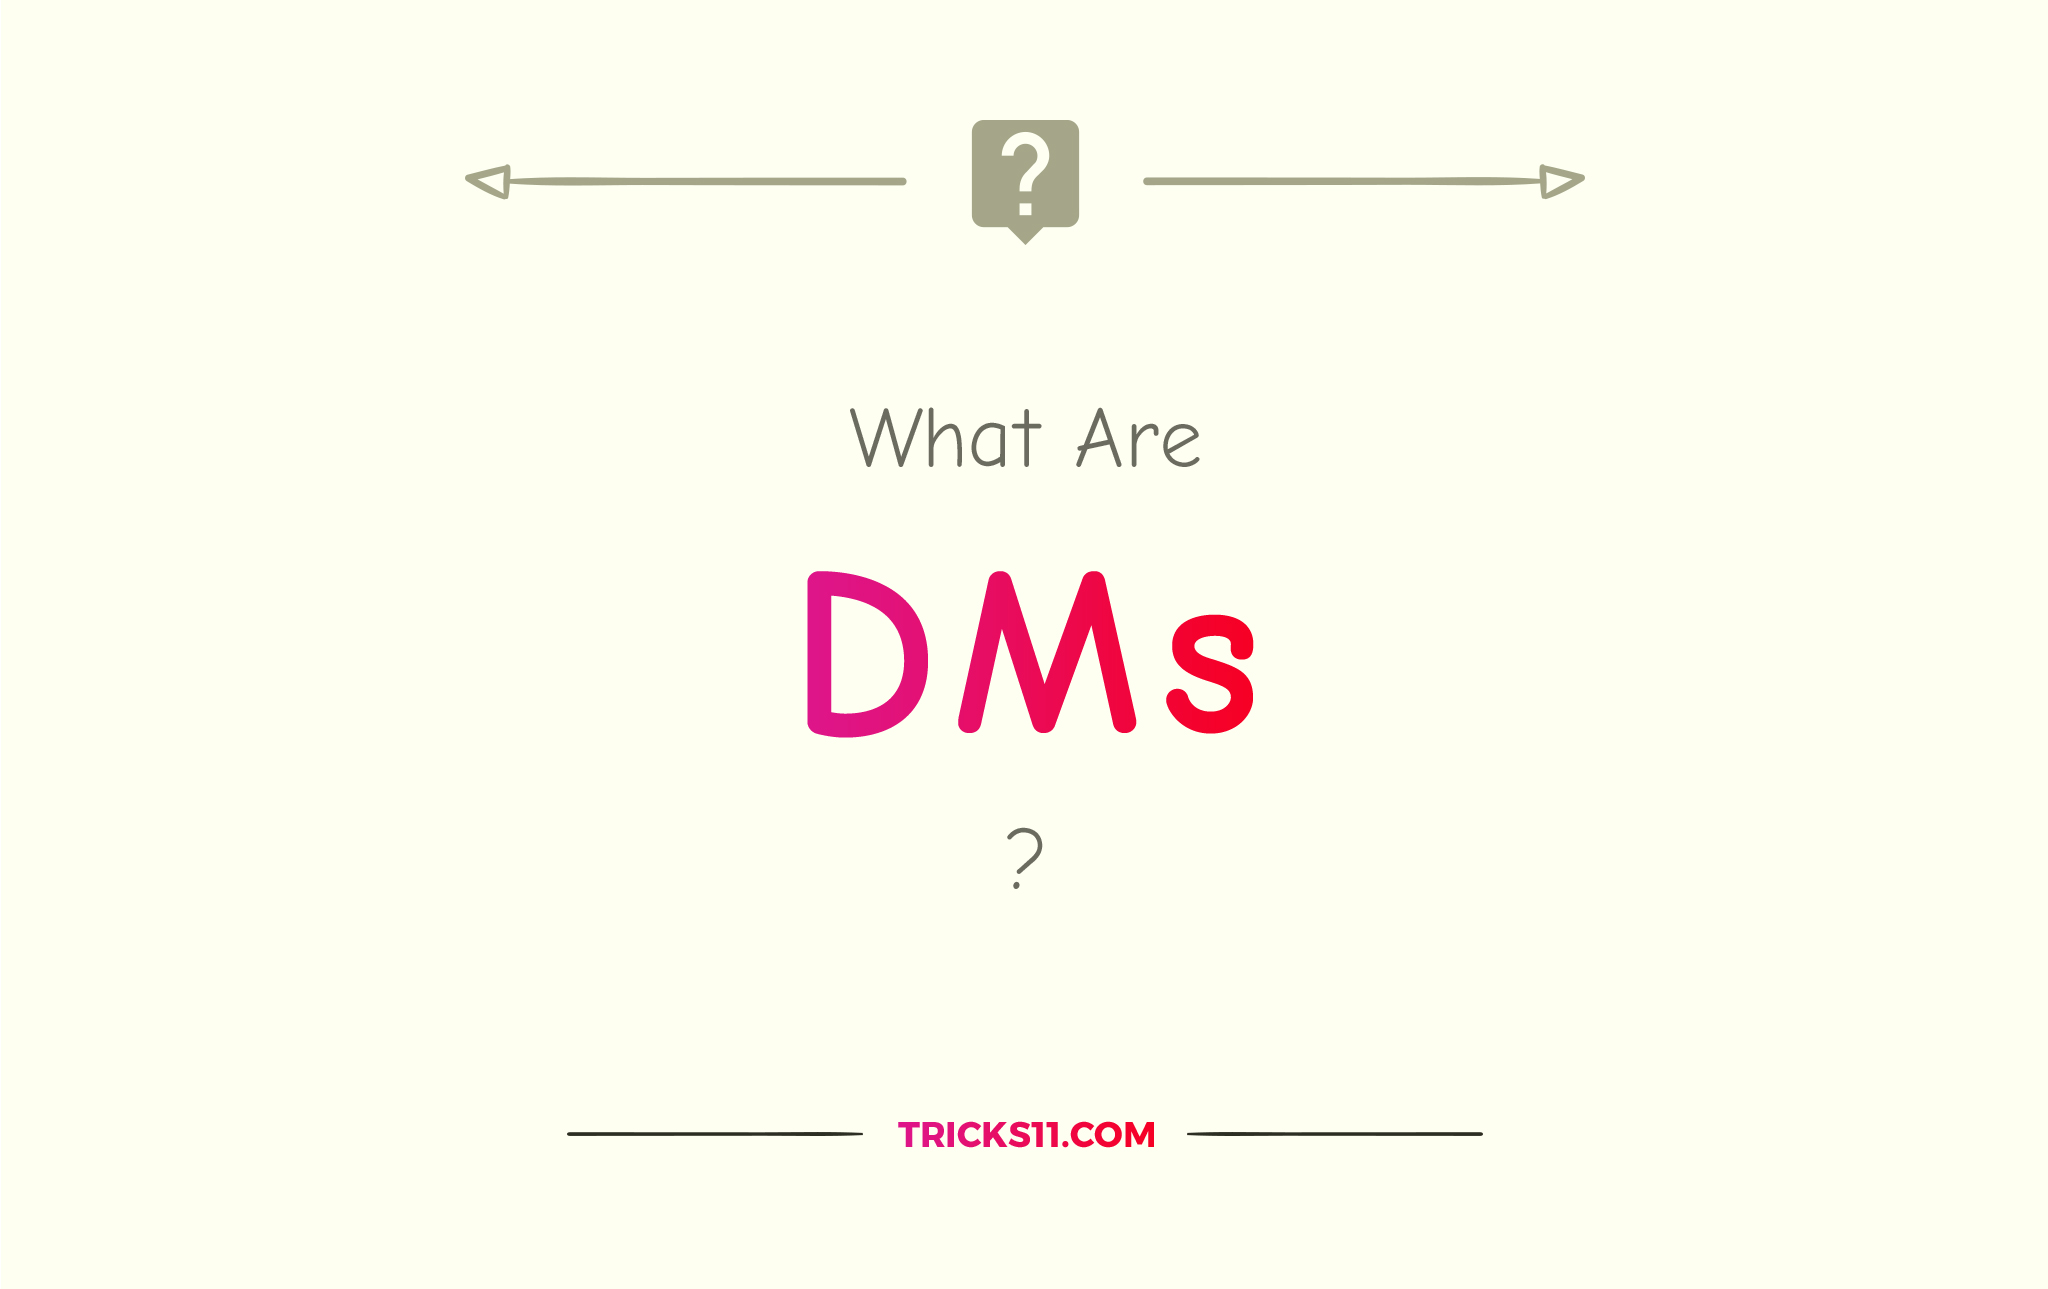 What Are DMS?